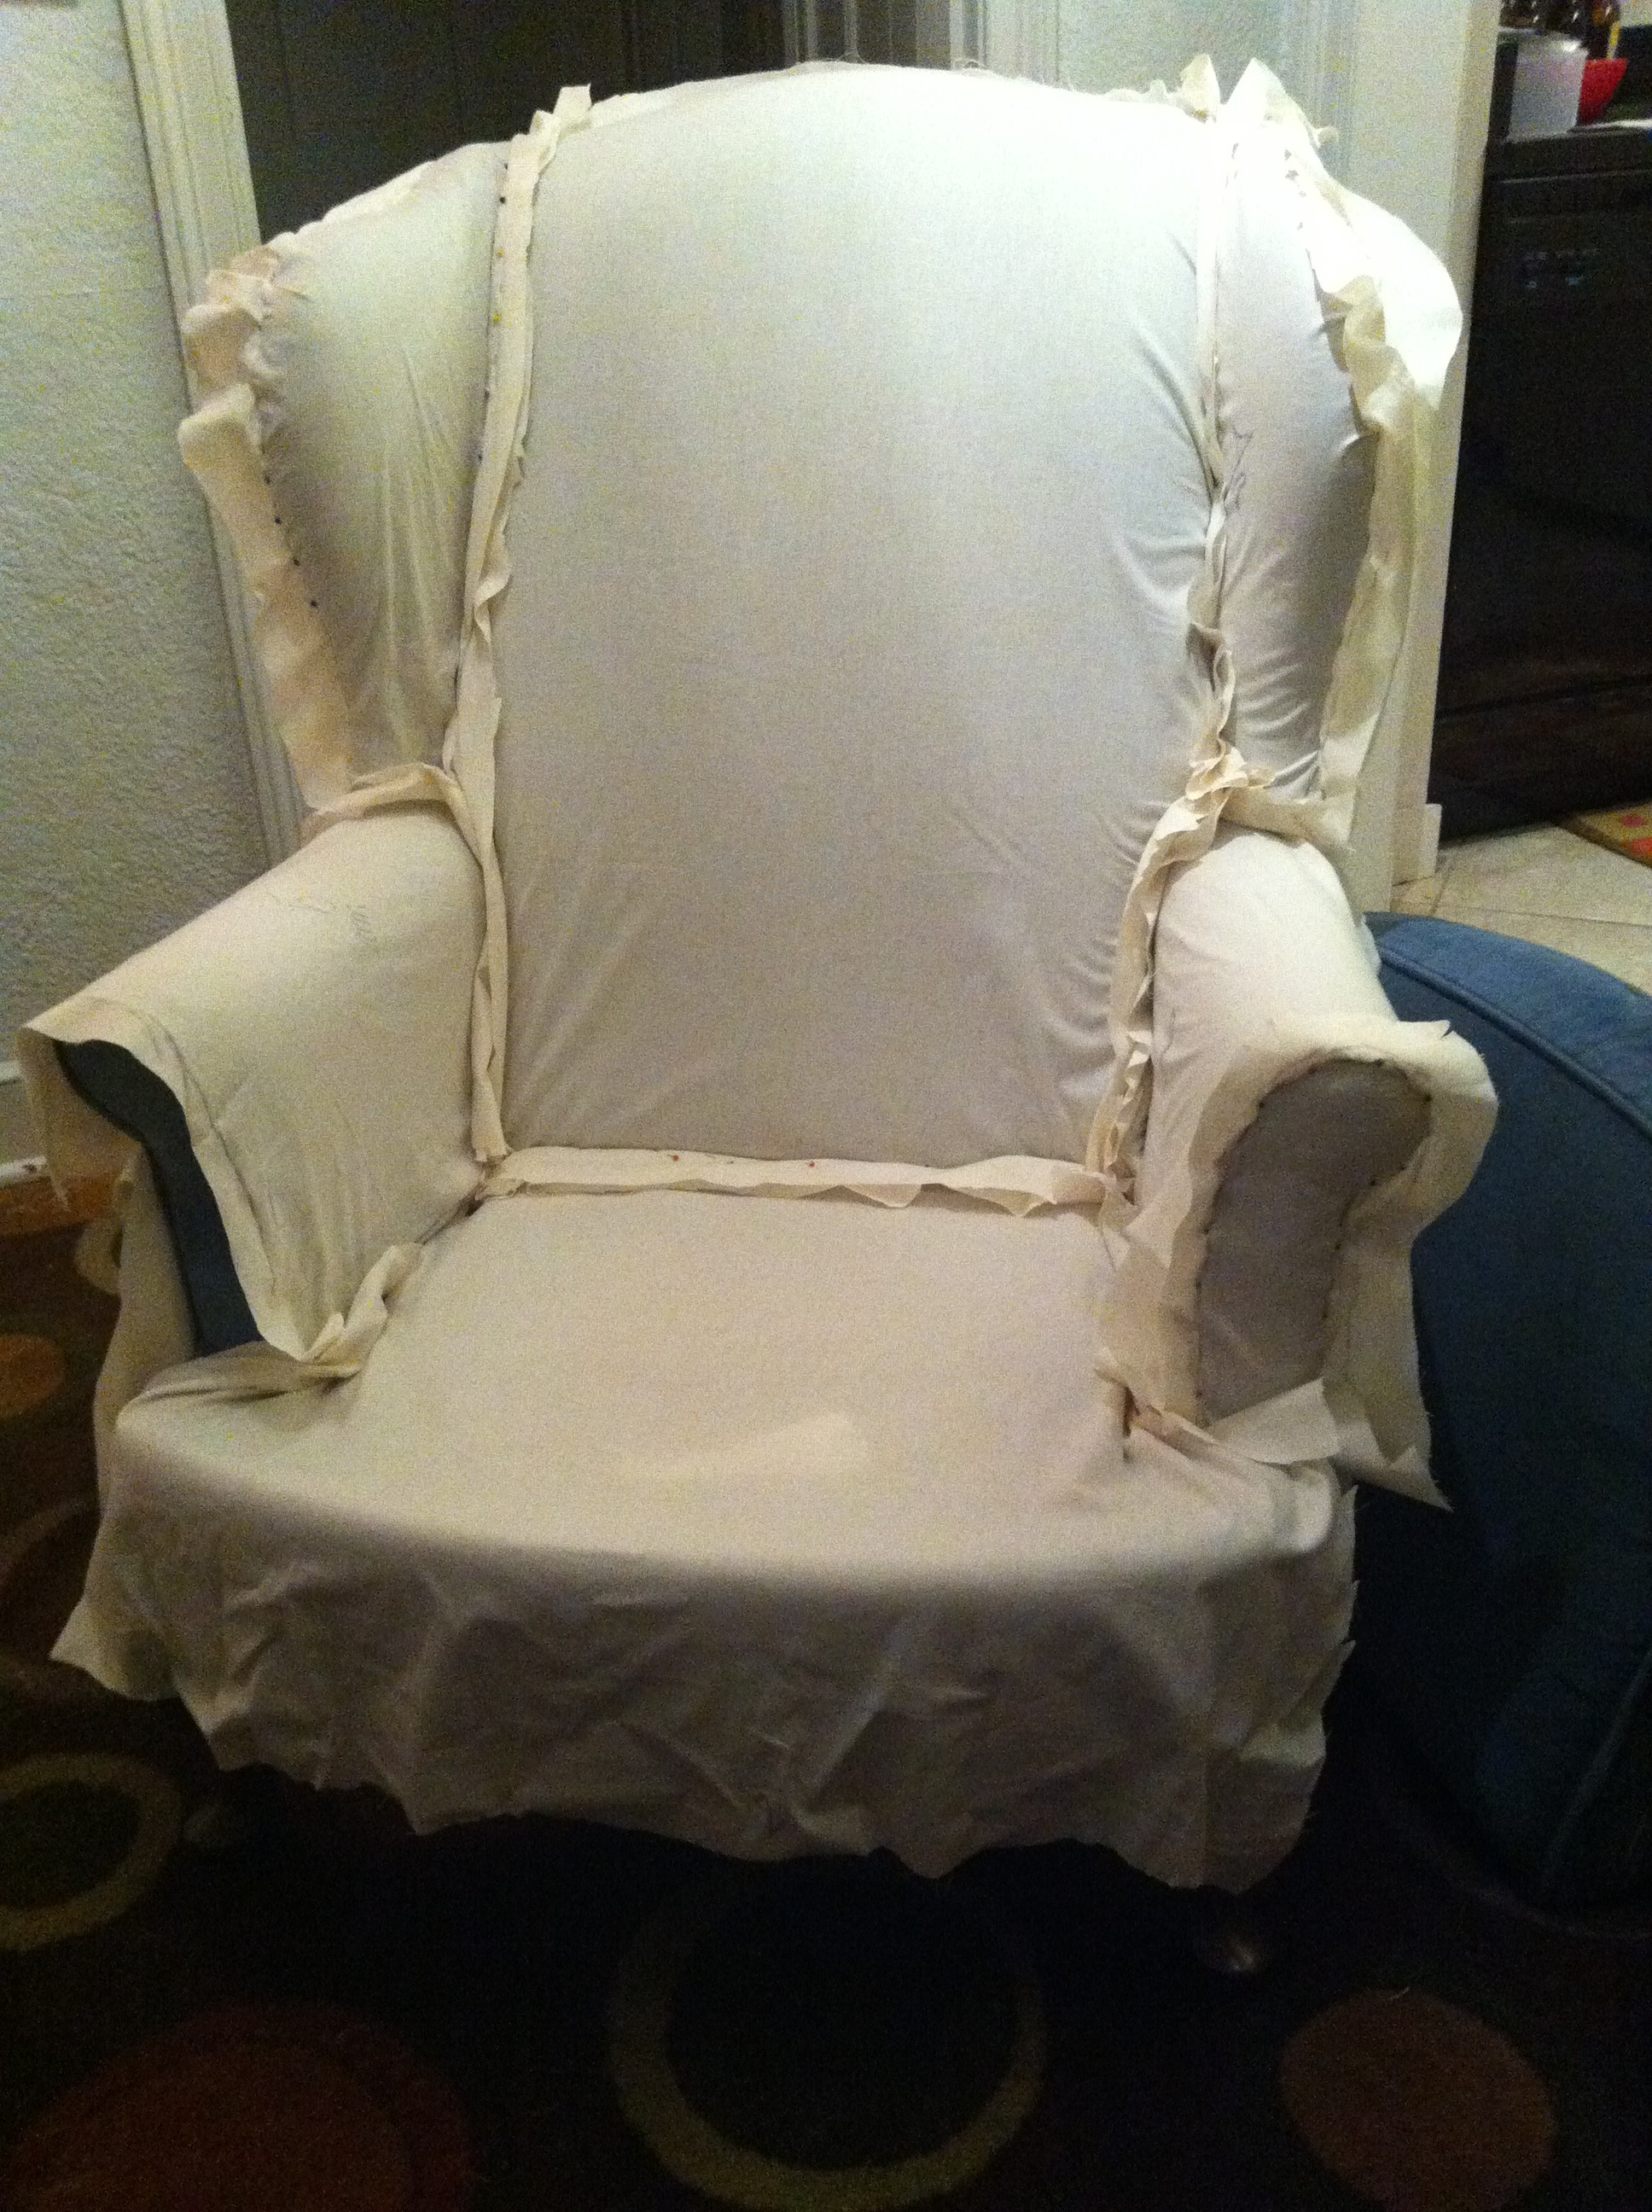 chair covers | eBay - Electronics, Cars, Fashion, Collectibles